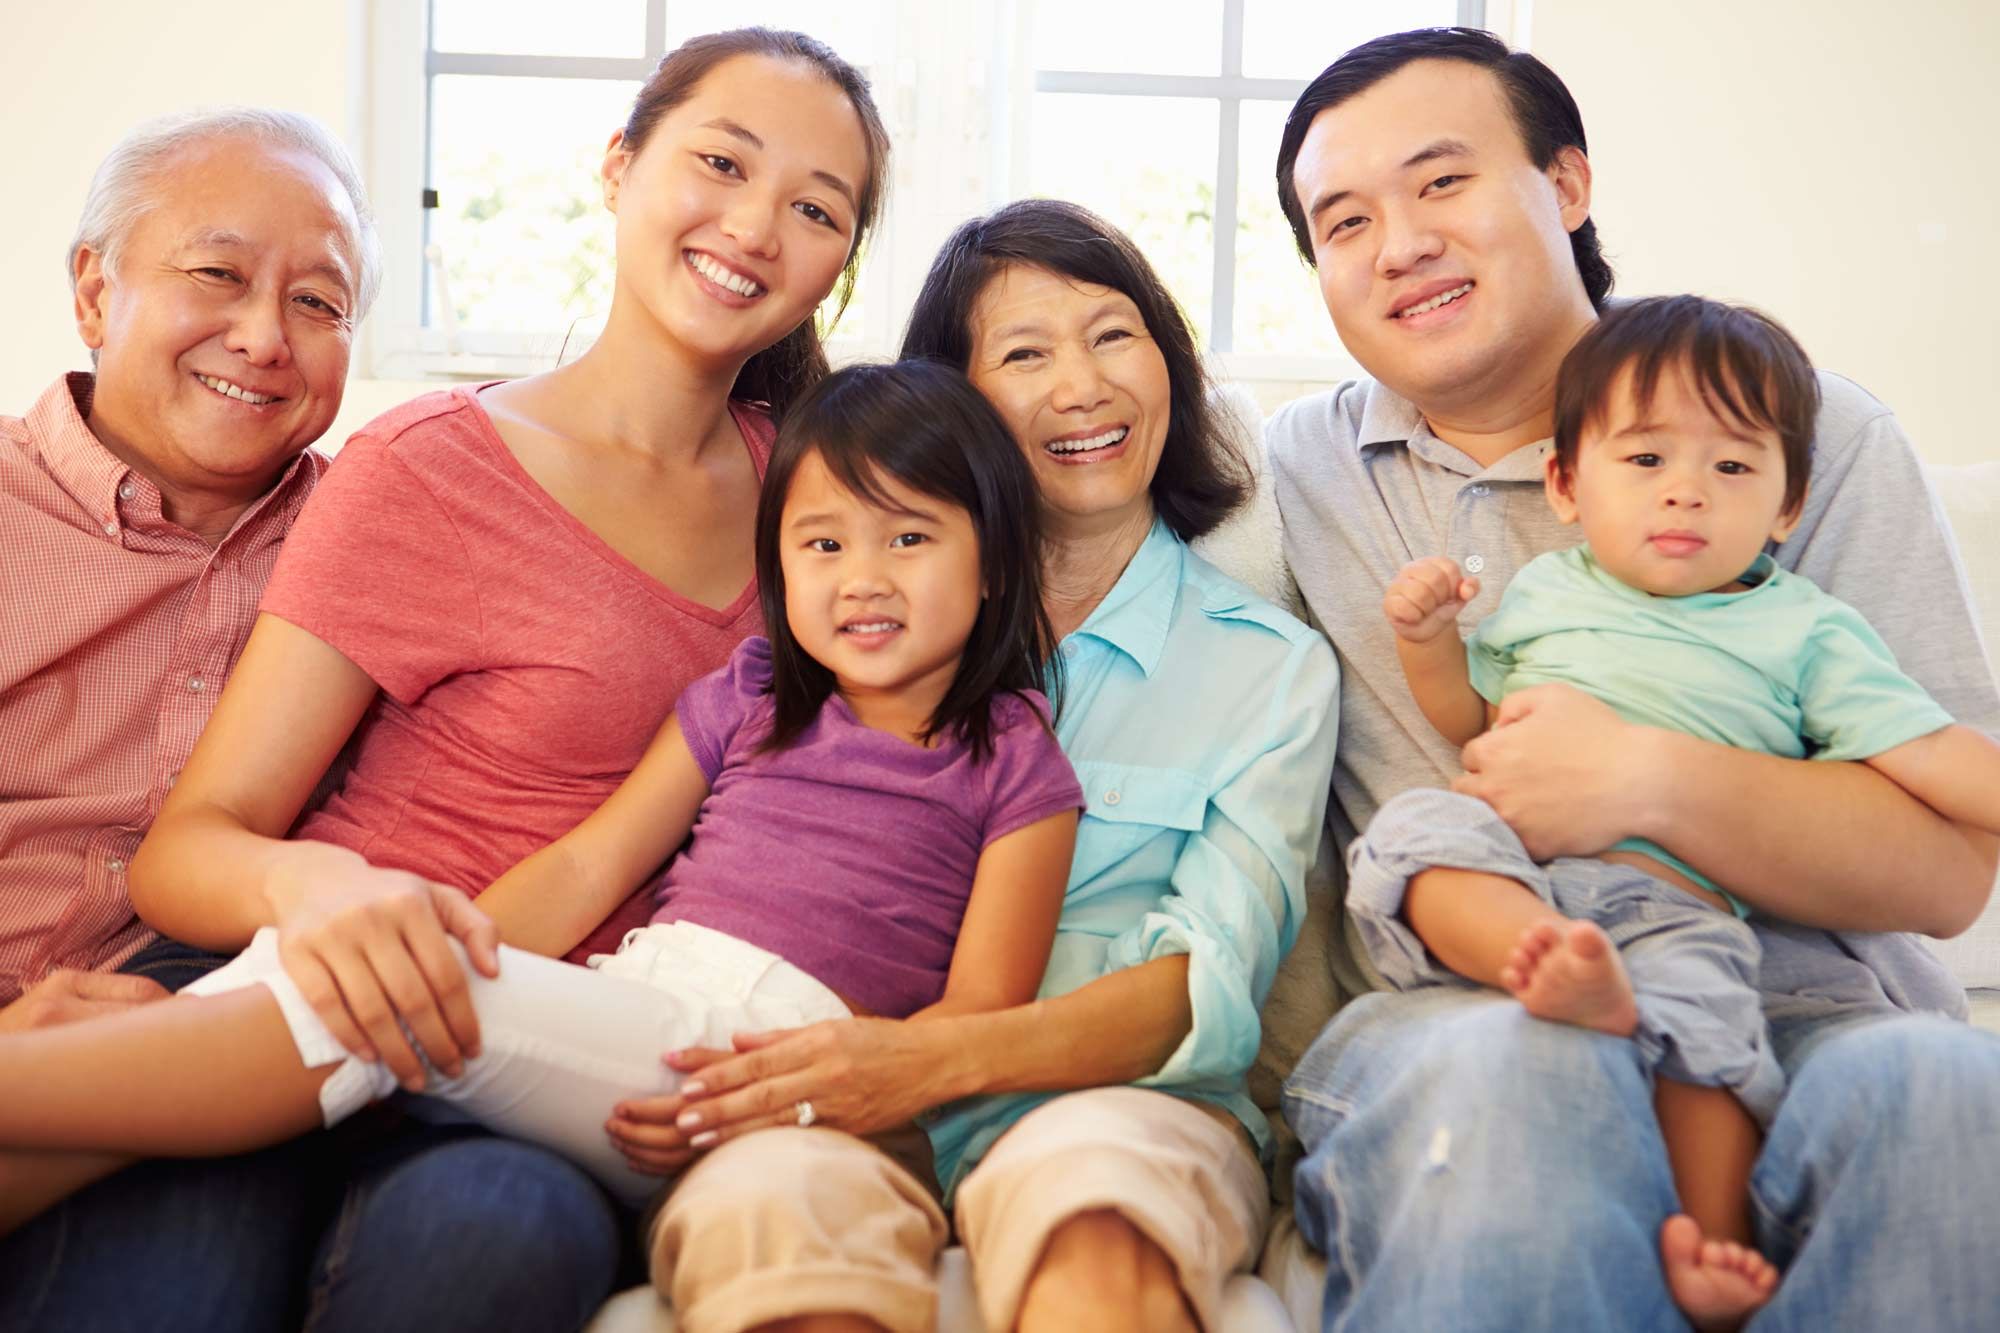 family relationships in india I couldn't leave my room to see any of my family during our reunion and my family wasn't allowed to come up to see me i cried a lot in july my mom found my question on yahoo answers and she moved me to the garage and i had to sleep on the bare garage floor with nothing and had to stay in there for a month.